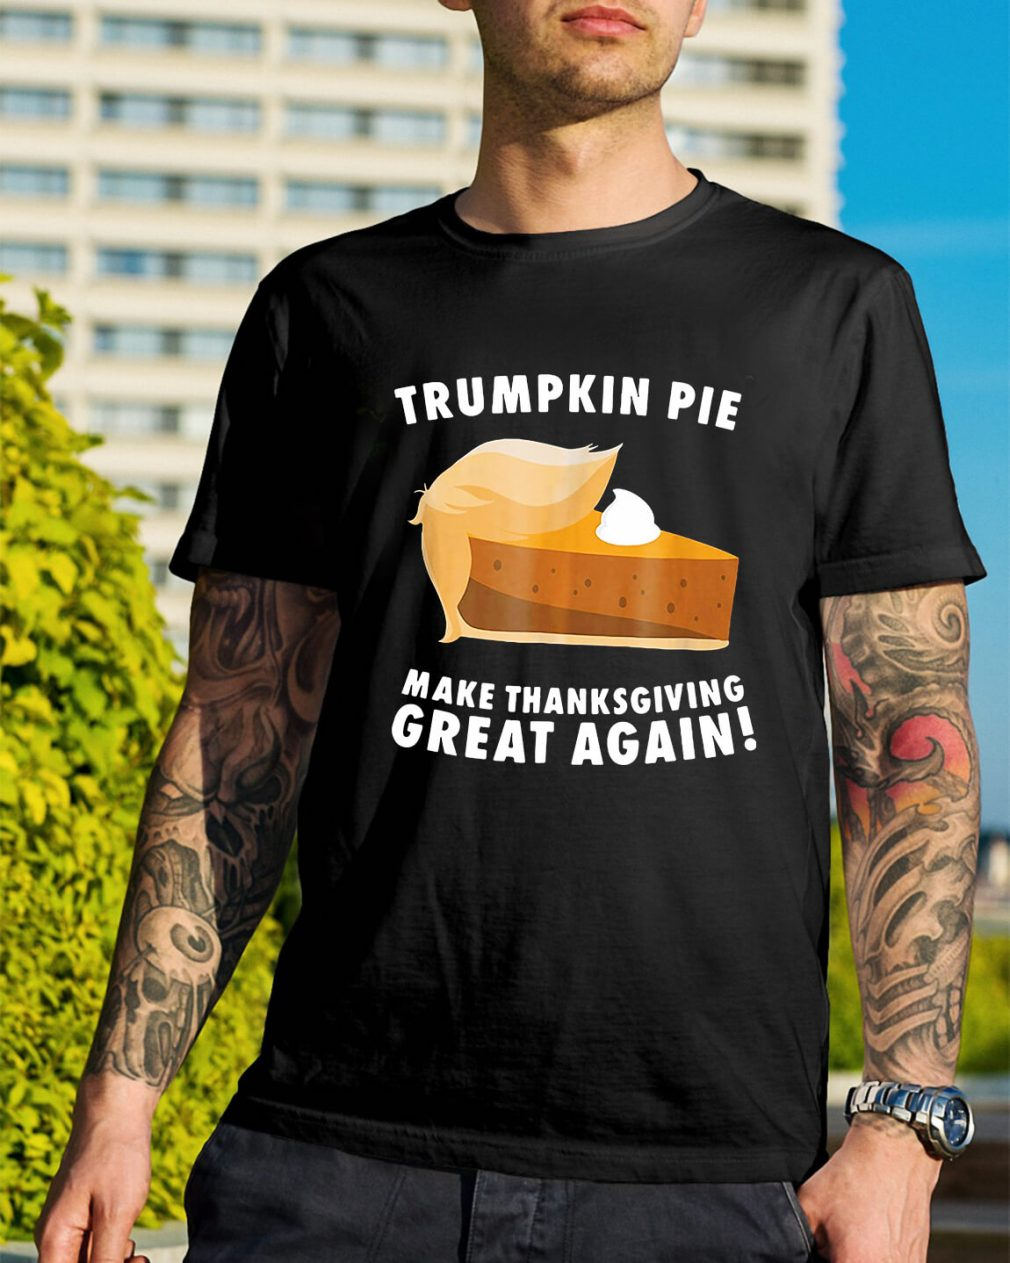 Trumpkin Pie make thanksgiving great again shirt